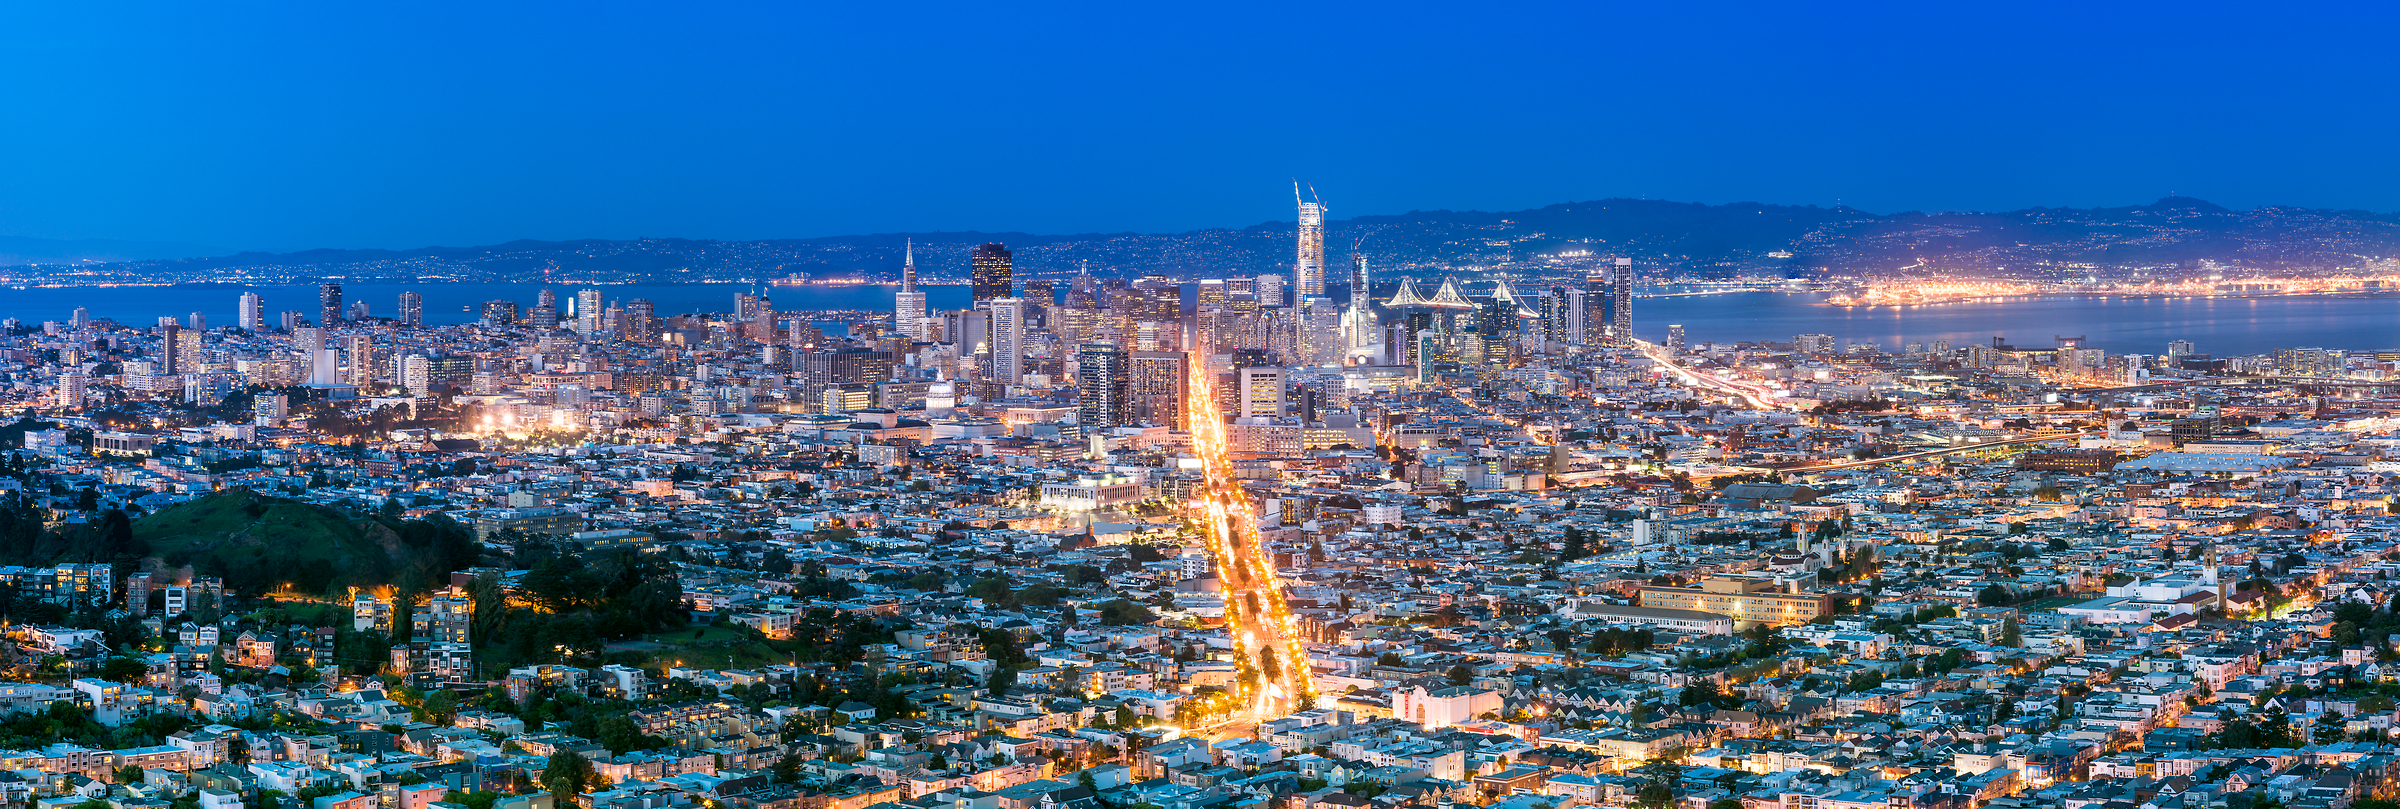 363 megapixels! A very high resolution, large-format VAST photo of the Downtown San Francisco city skyline at sunset dusk; fine art cityscape photograph created by Justin Katz in California